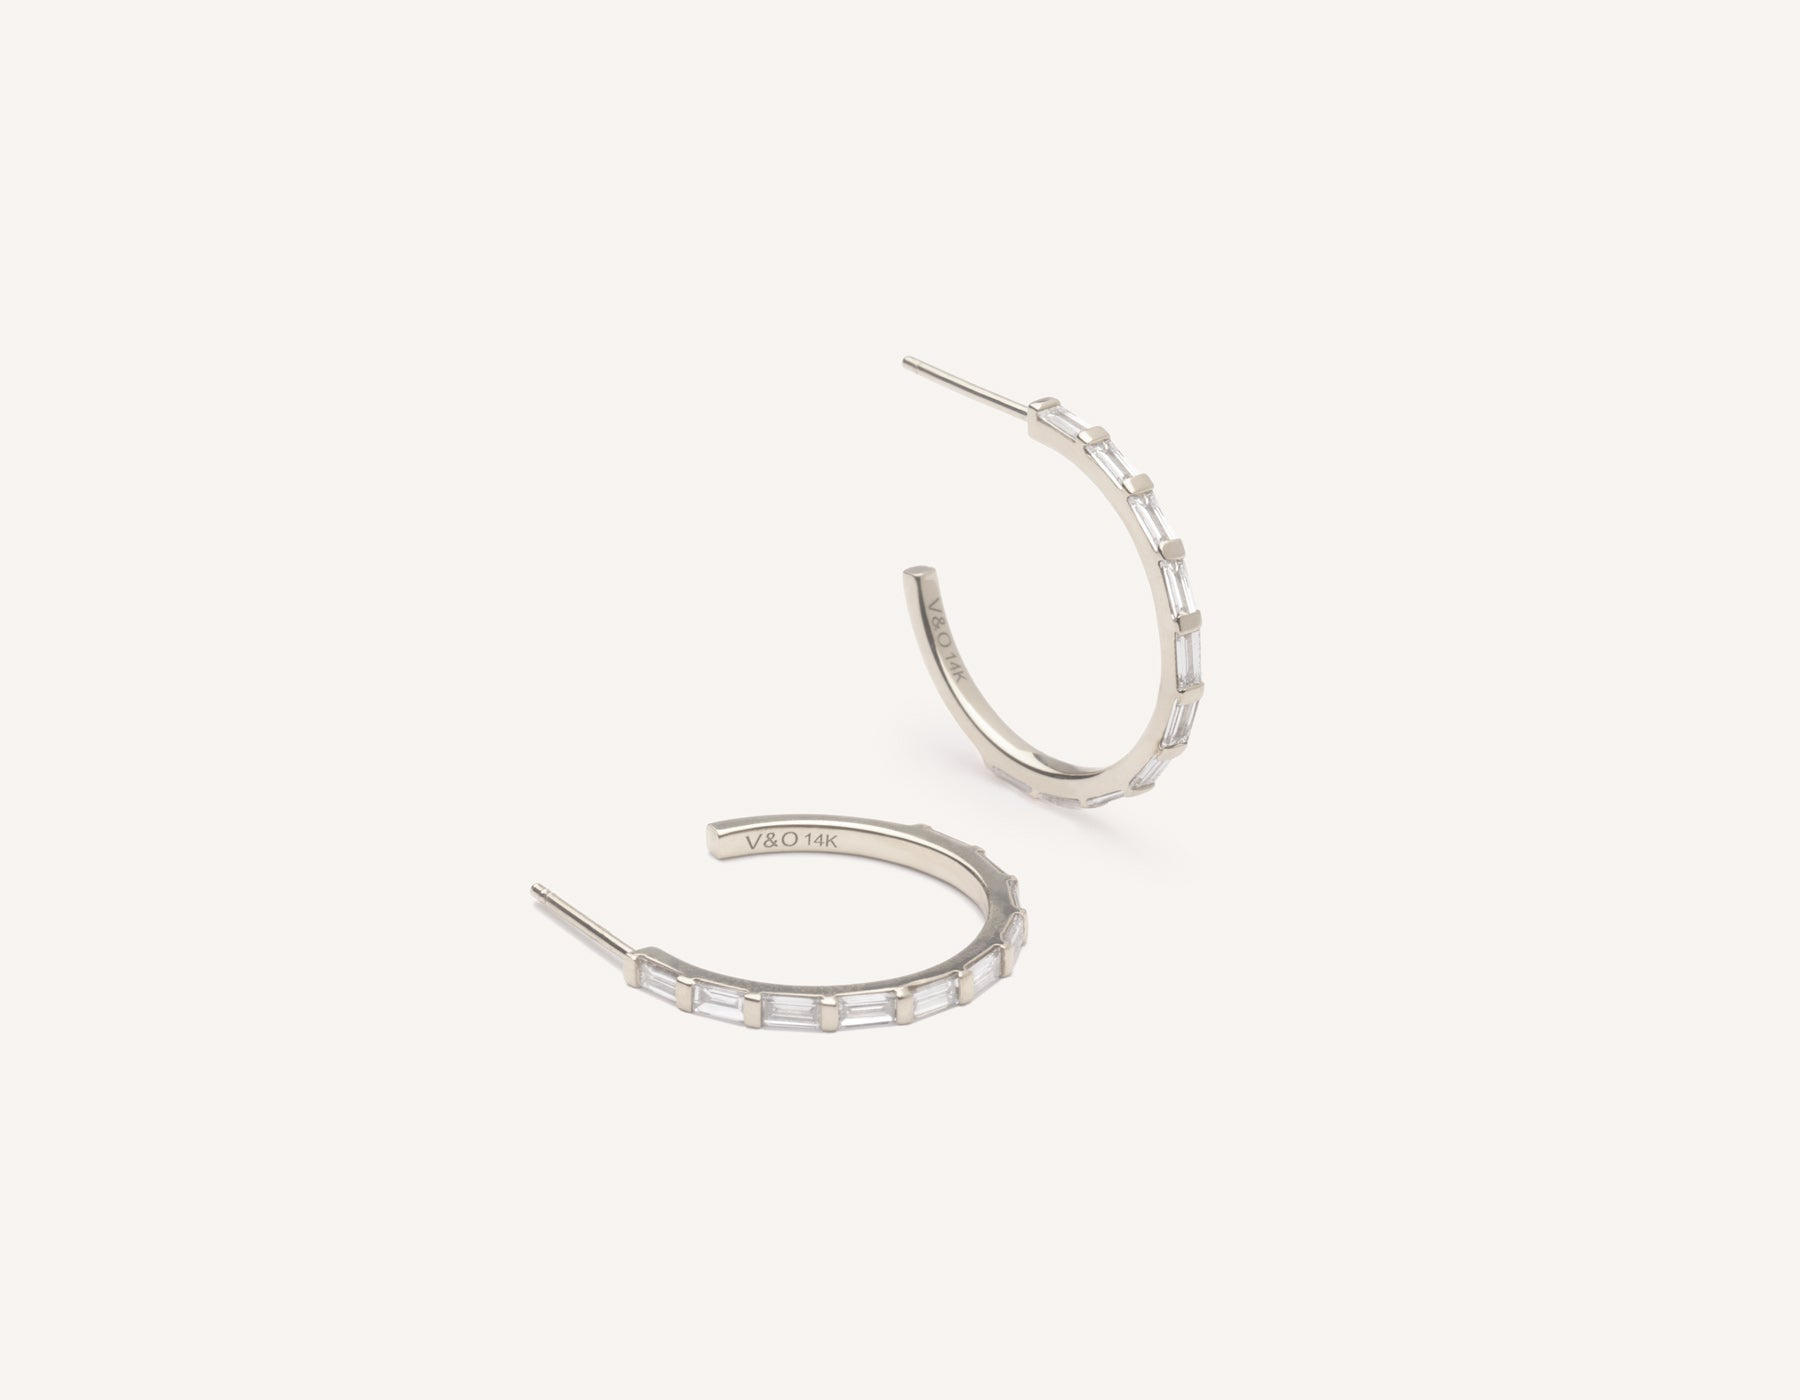 Vrai & Oro modern minimalist 14k solid gold Baguette Diamond Hoop earrings, 14K White Gold